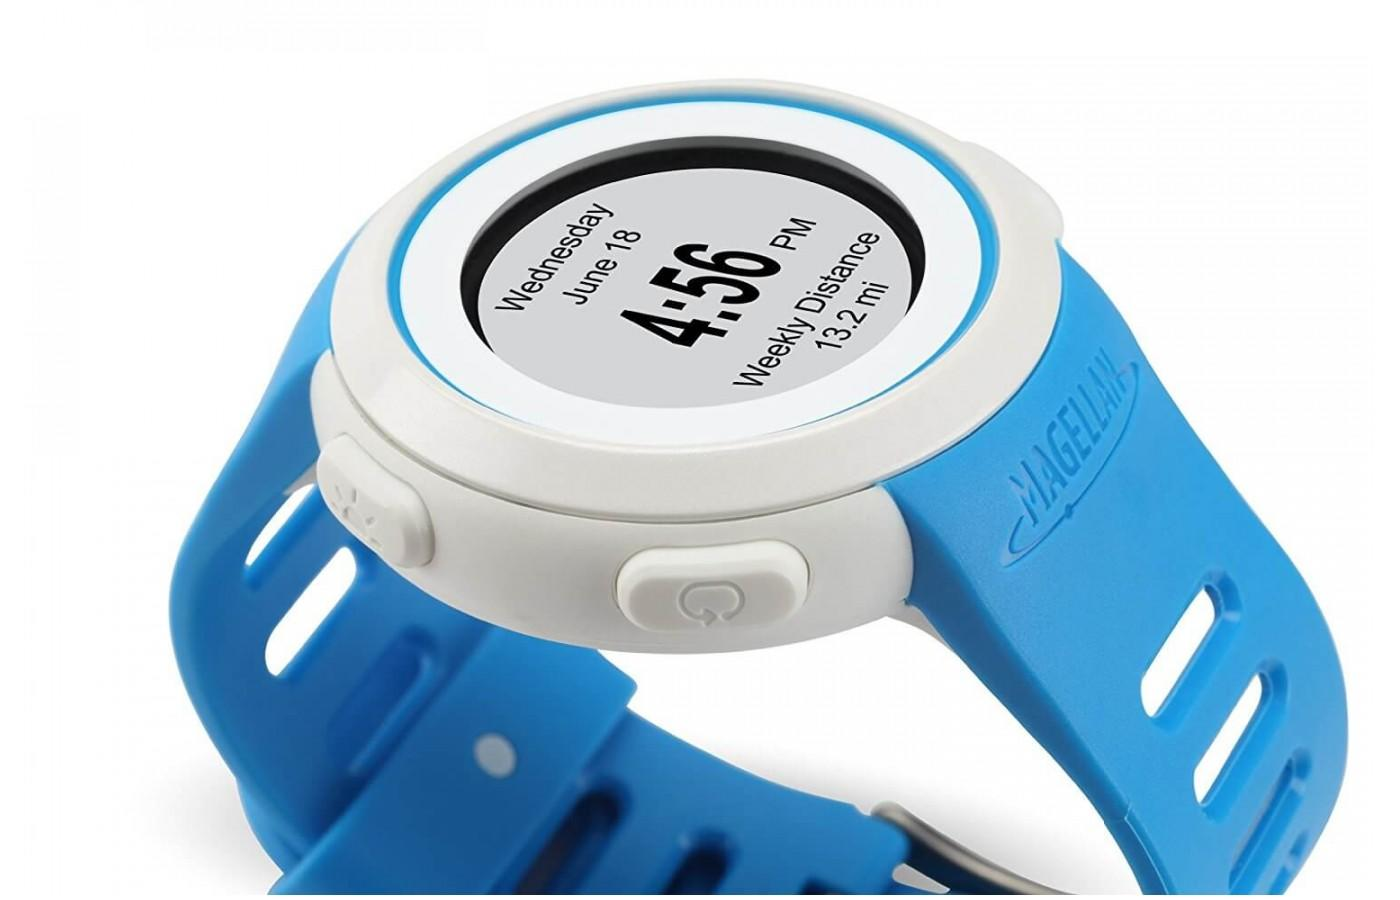 the Magellan Echo shows the time and has buttons on the side